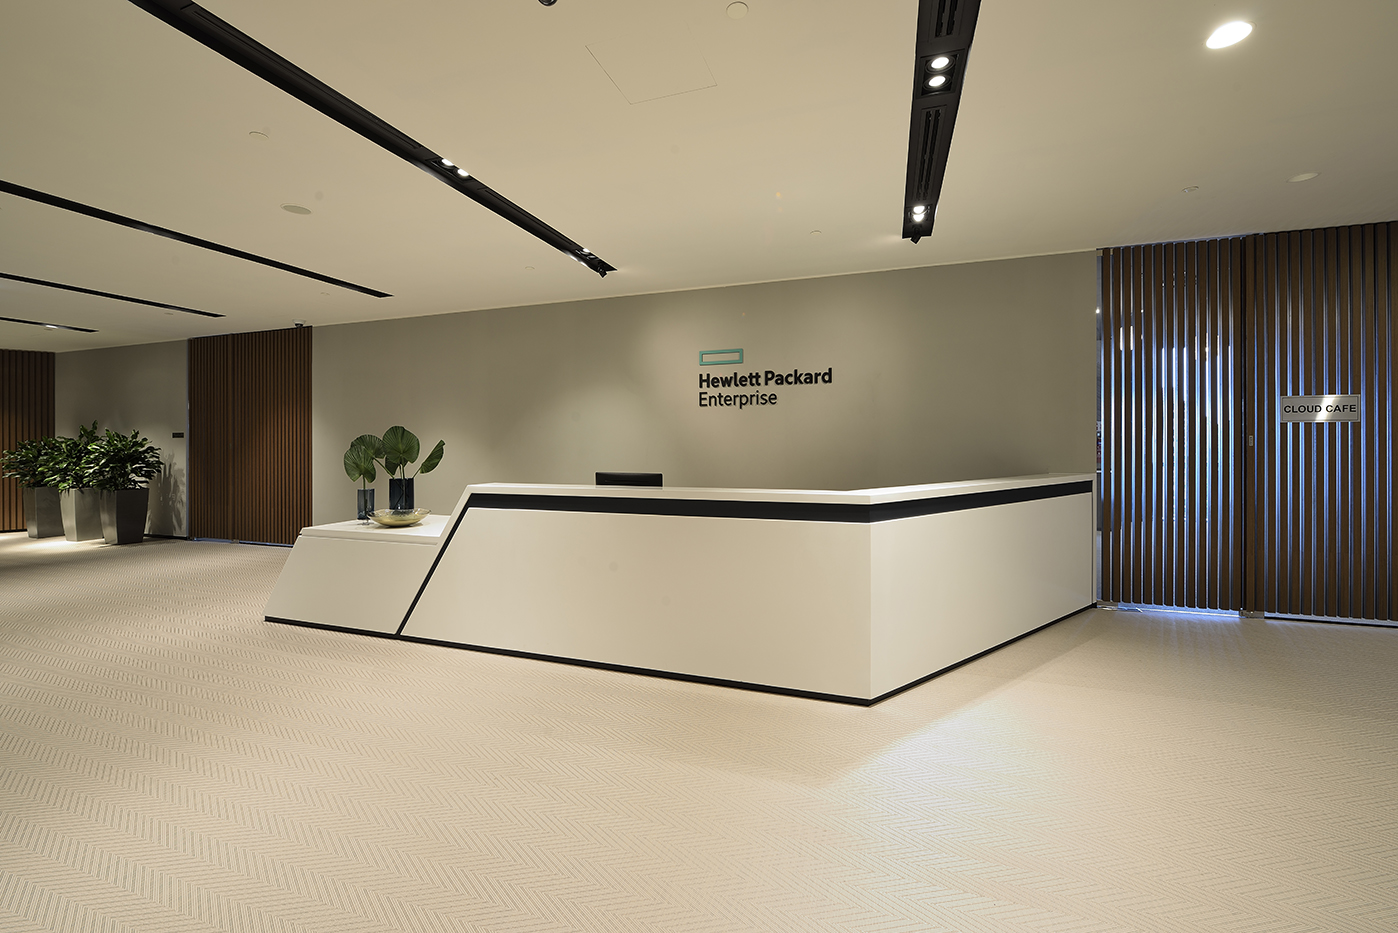 Hewlett Packard Enterprise Hpe Bolon